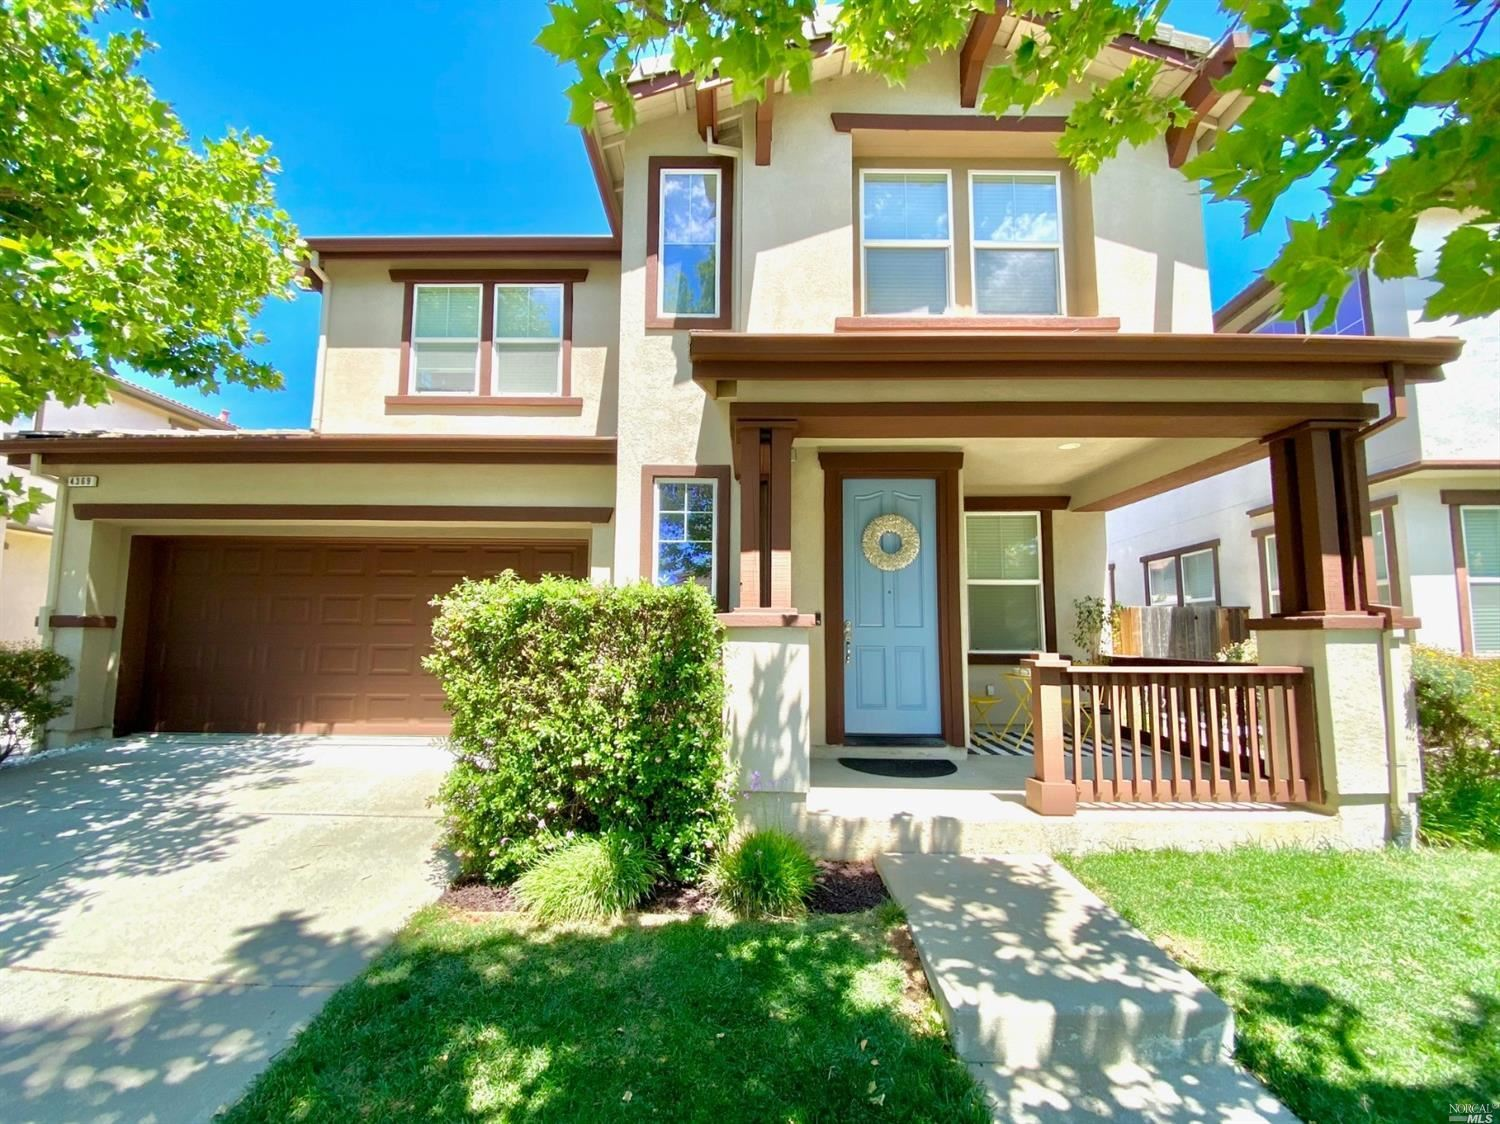 4369 The Masters Drive, Fairfield, CA 94533 - MLS#: 321092029